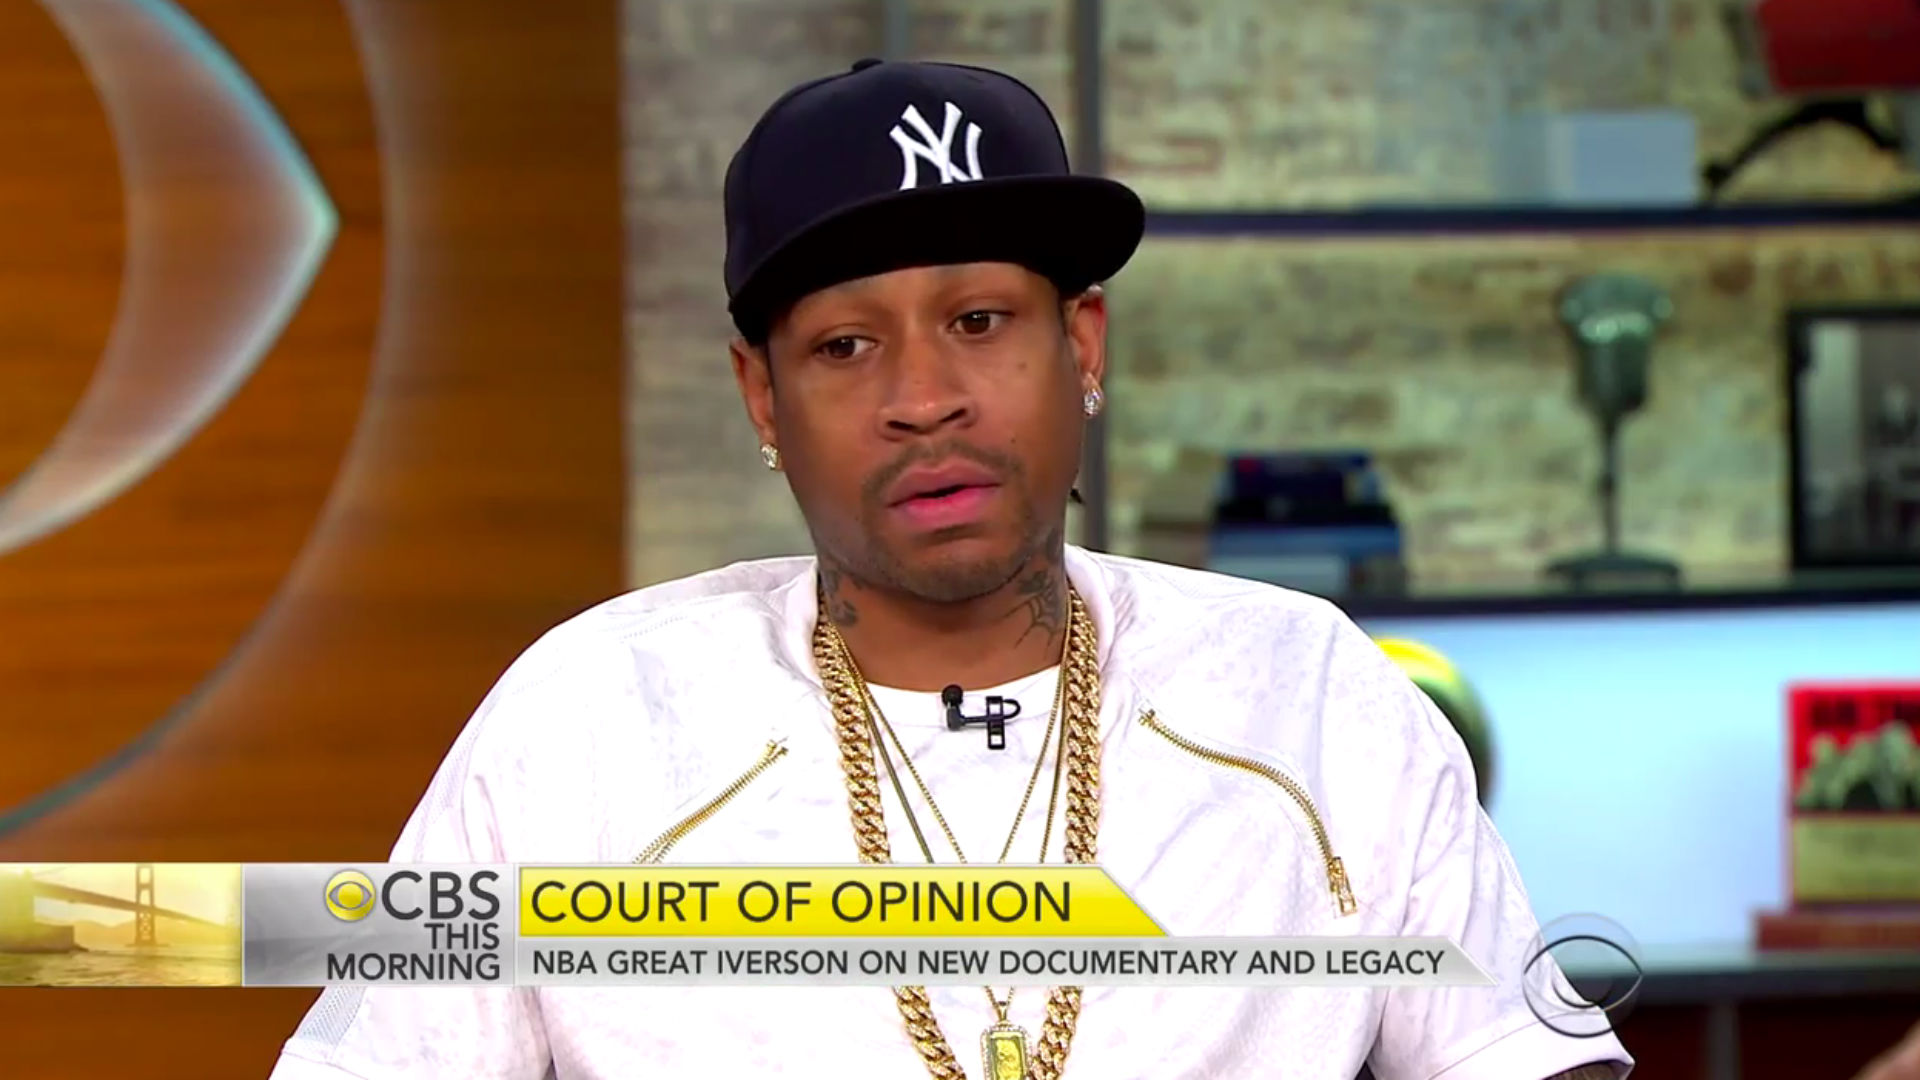 How much money is allen iverson worth